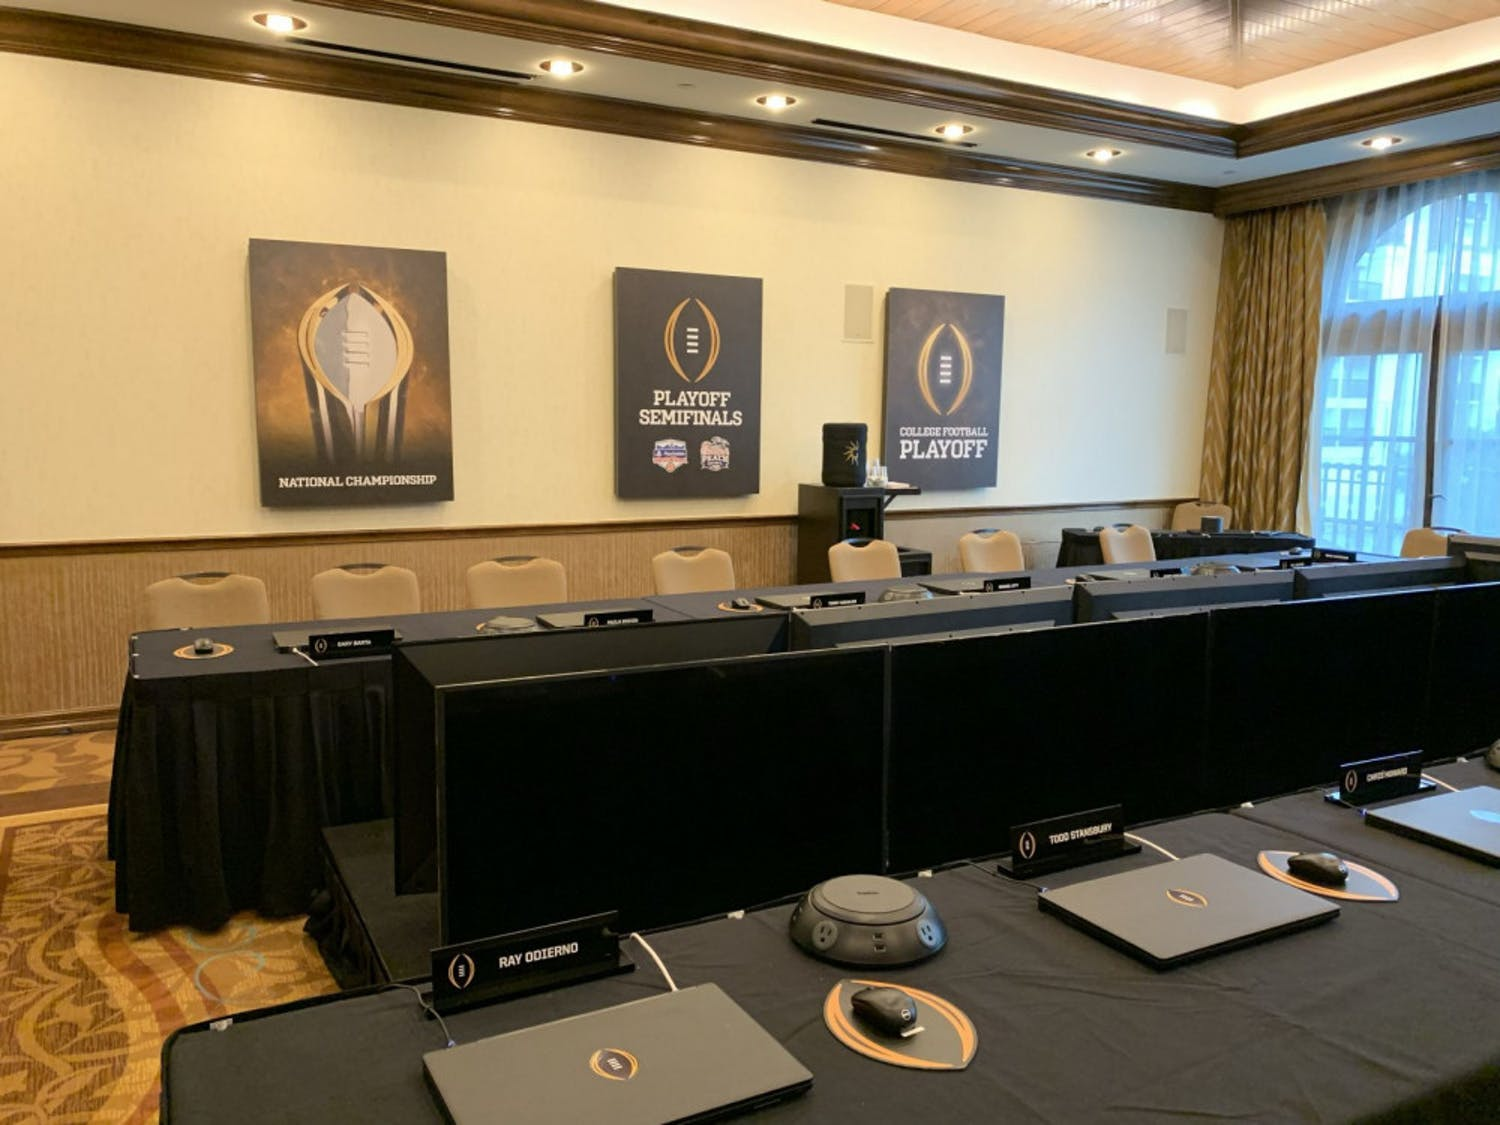 College Football Playoff selection room in Texas.